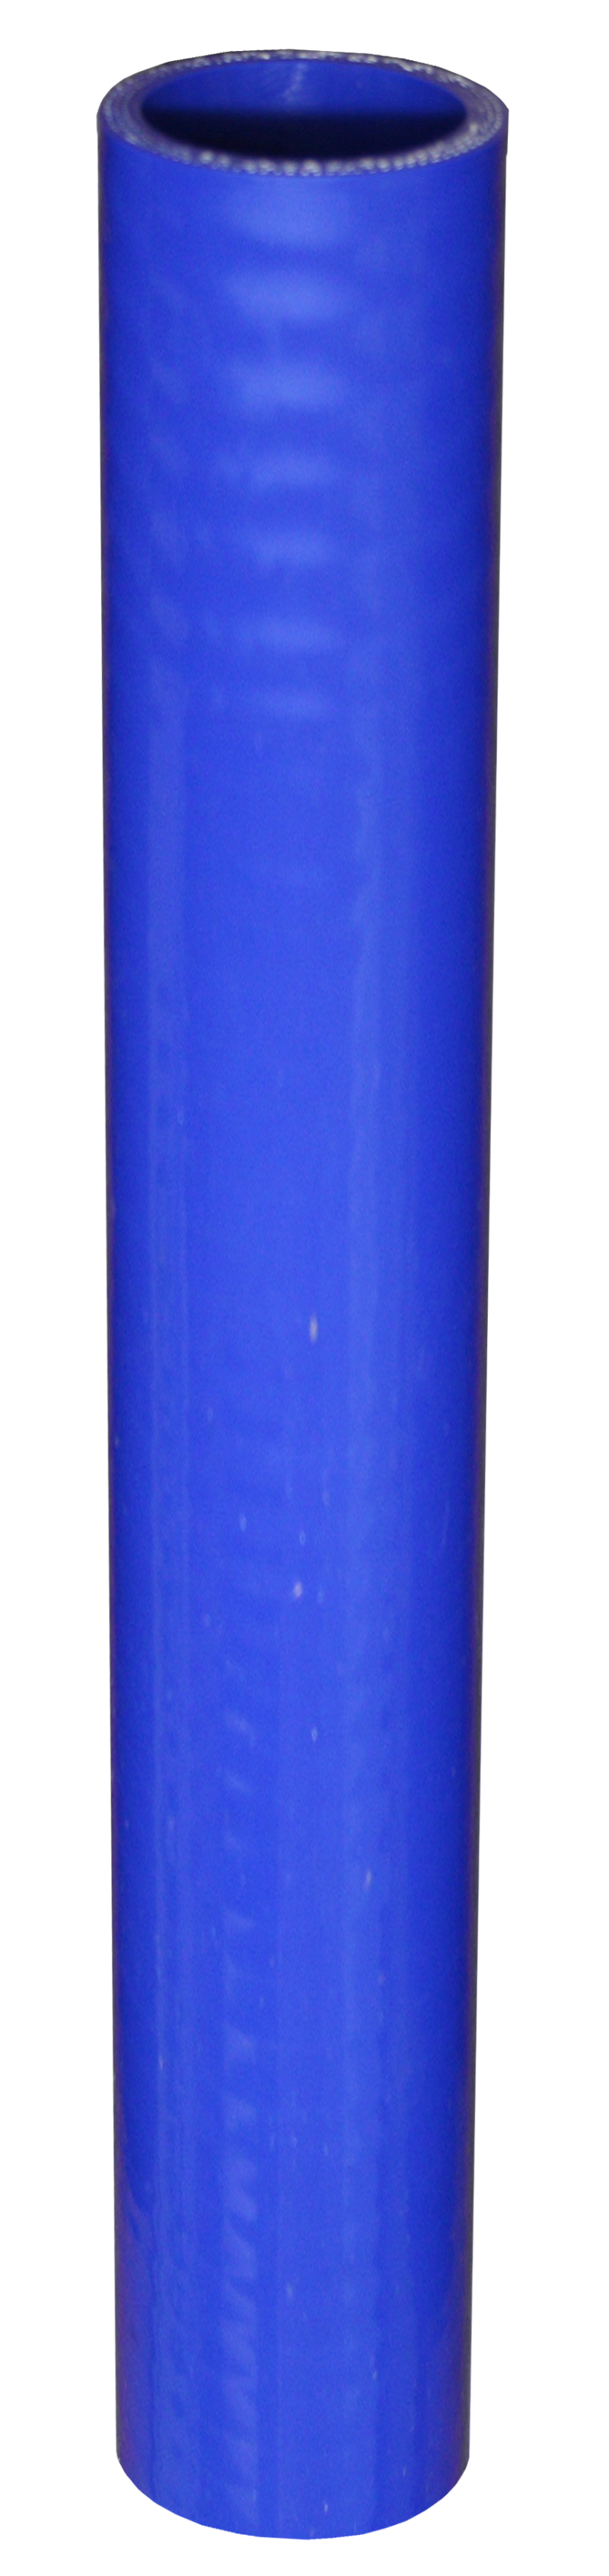 Silicon  Blue  Radiator   Hose  6 Inch Length  1.50 I.D.